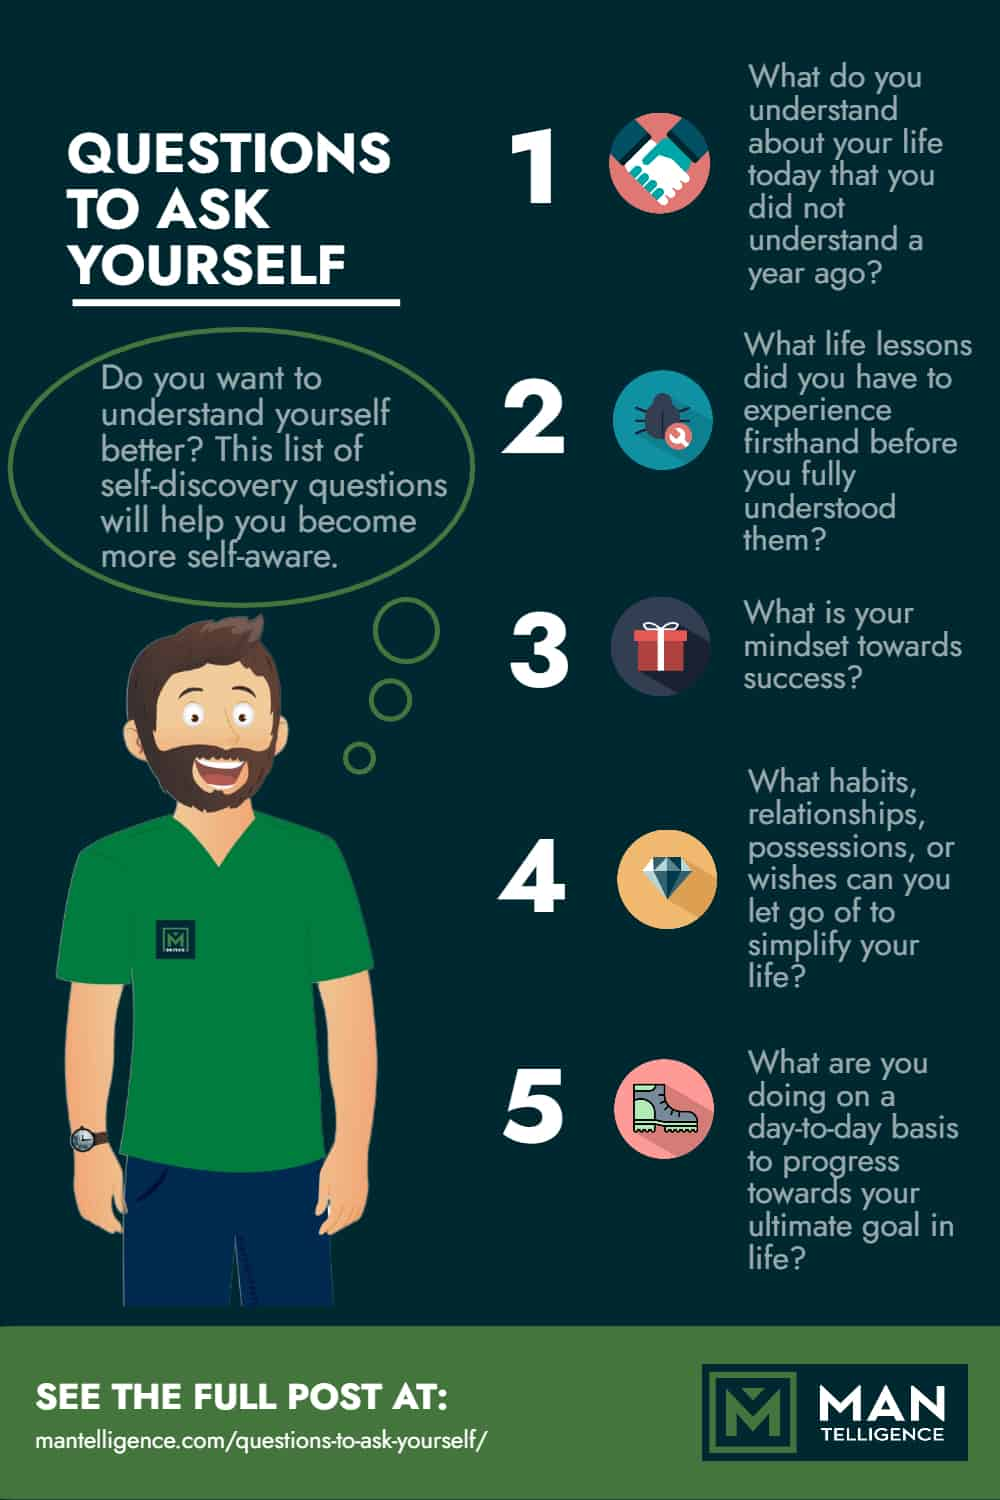 QUESTIONS TO ASK YOURSELF - Infographic